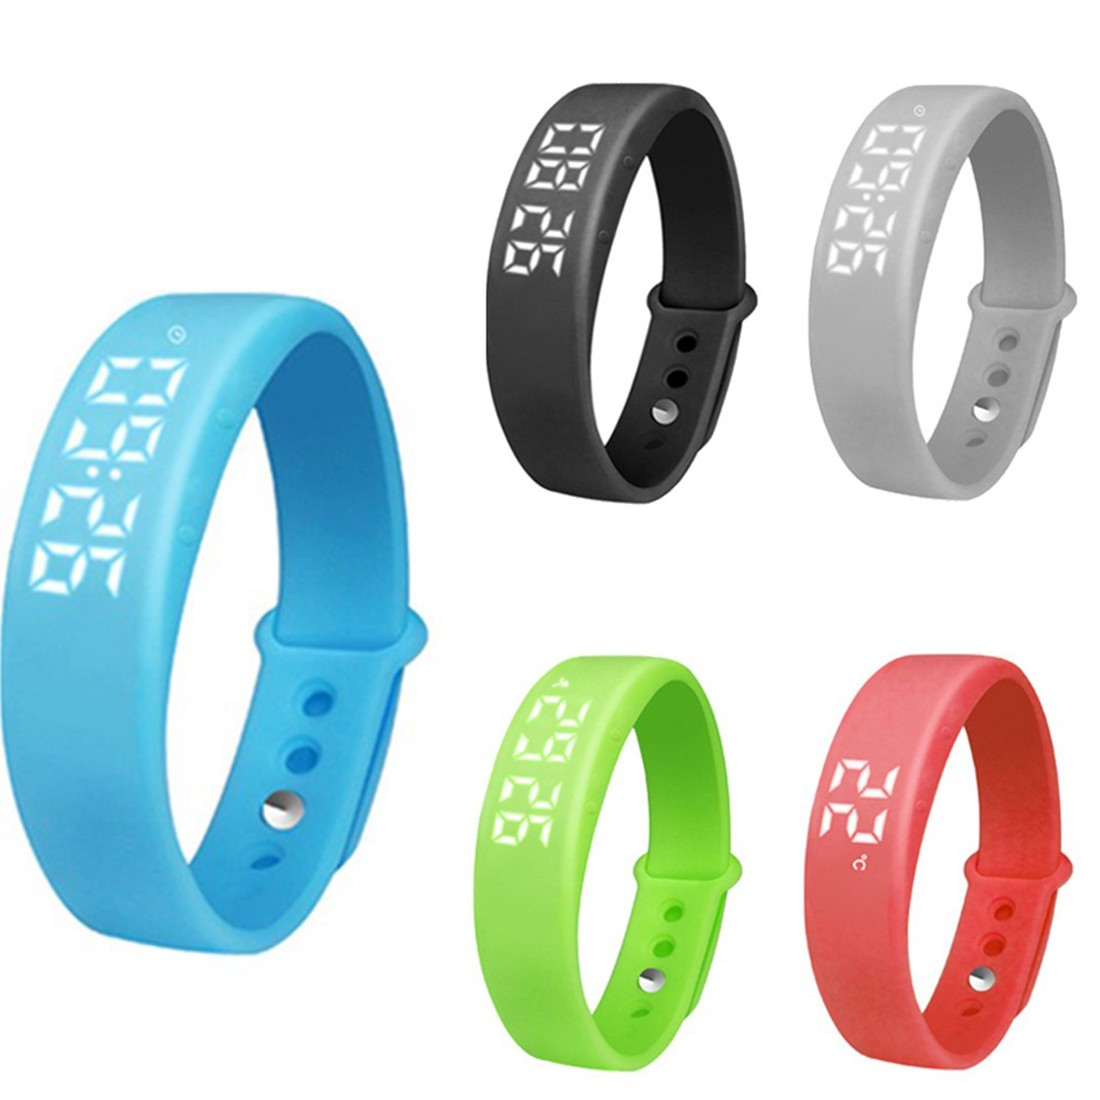 33fa4b2bdacf0 100% New Smart Wristband Bracelet Bracelet Fitness Pedometer Step Real Time  Temperature Display Sports Wristband For IOS Android